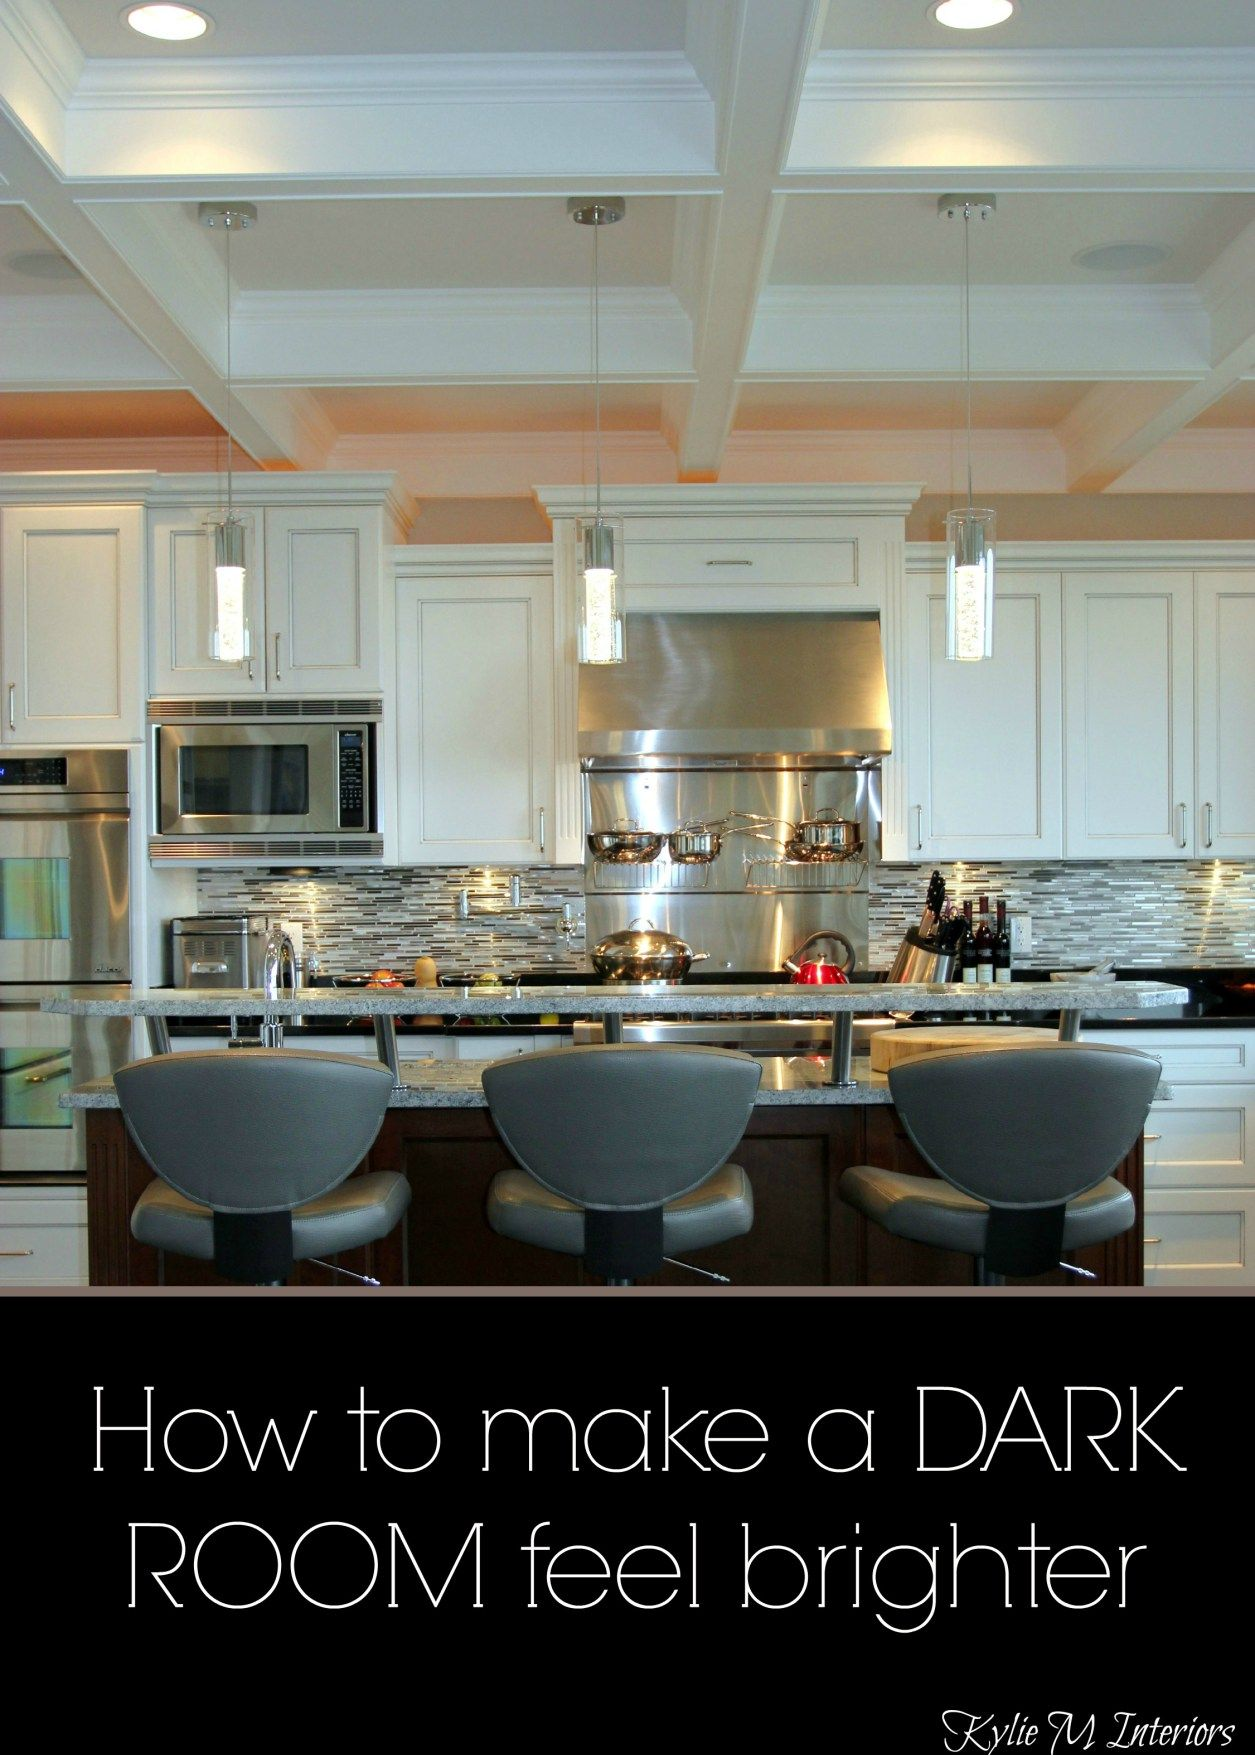 How To Make A Dark Room Bat Or Family Feel Brighter With Lighting Paint And Decor